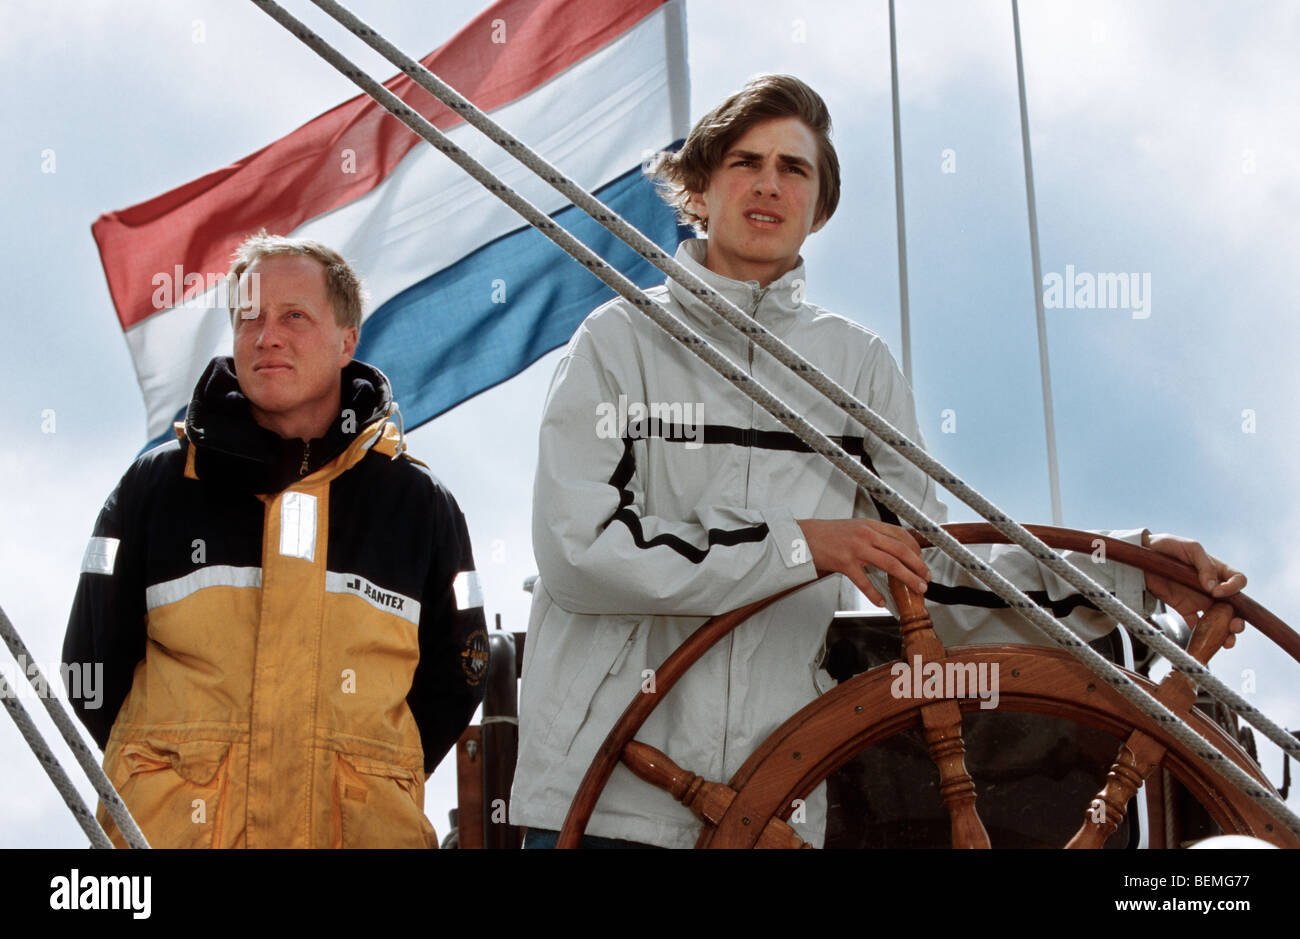 Yachtsmen on board of clipper, Wadden Sea, the Netherlands - Stock Image